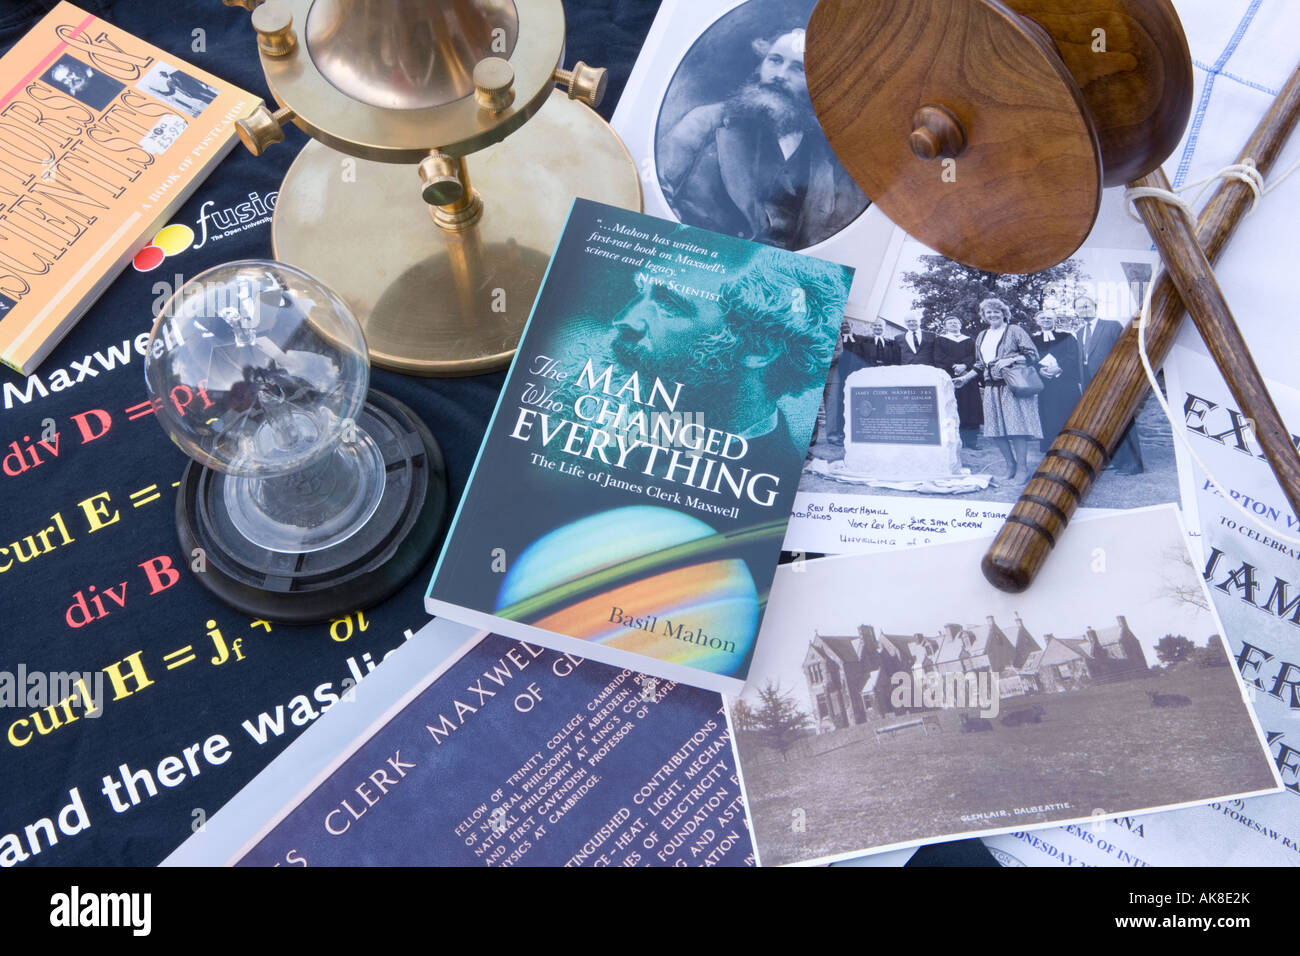 Memorabilia associated with the scientists James Clerk Maxwell including a Radiometer Dynamical Top Deil an Twa - Stock Image